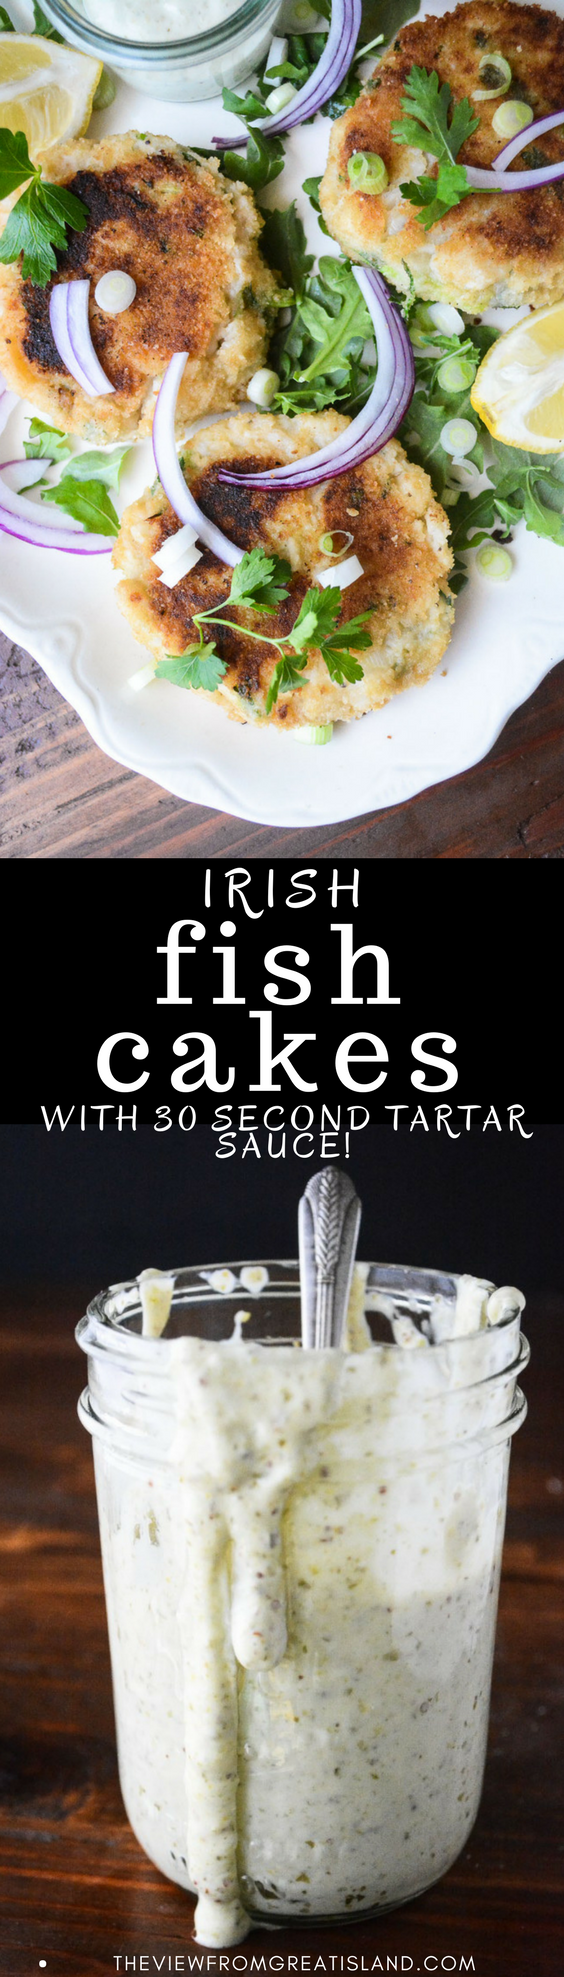 Irish Fish Cakes with 30 Second Tartar Sauce ~ tender fish cakes with an amazing authentic tartar sauce made in 30 seconds with your immersion blender! #fish #recipe #dinner #Irishrecipe #homemadetartarsauce #seafood #meatlessMonday #comfortfood